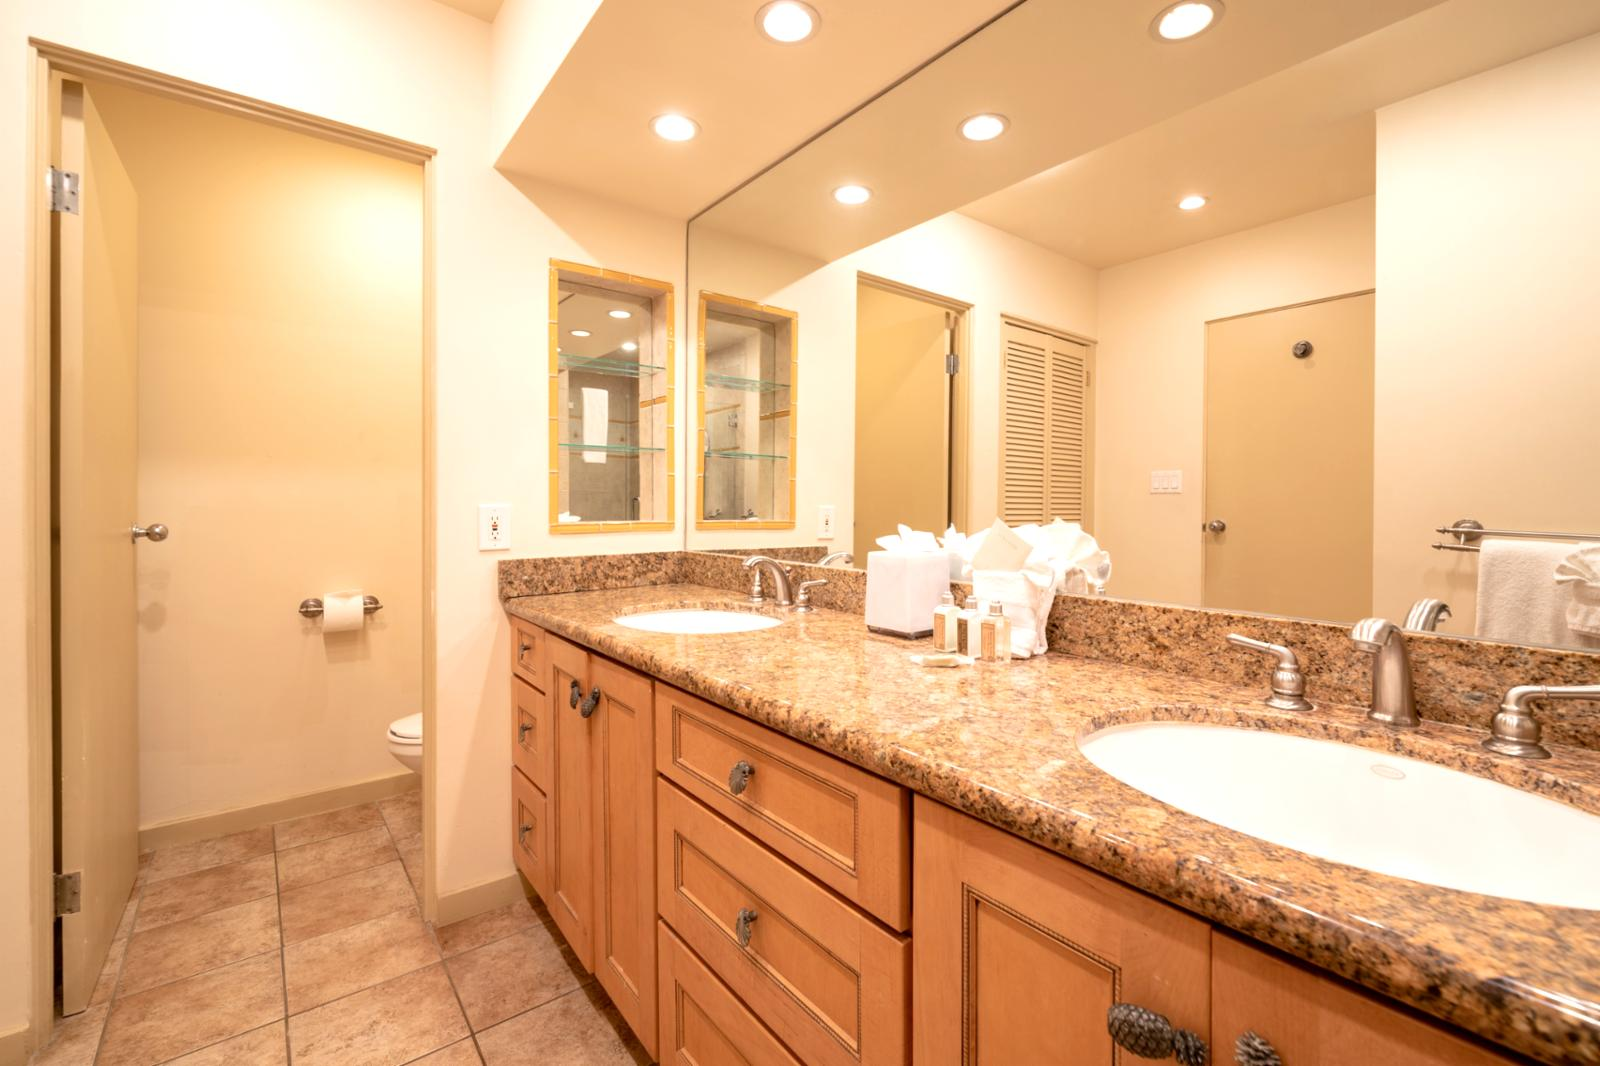 Custom interiors with dual sinks and upgraded lighting